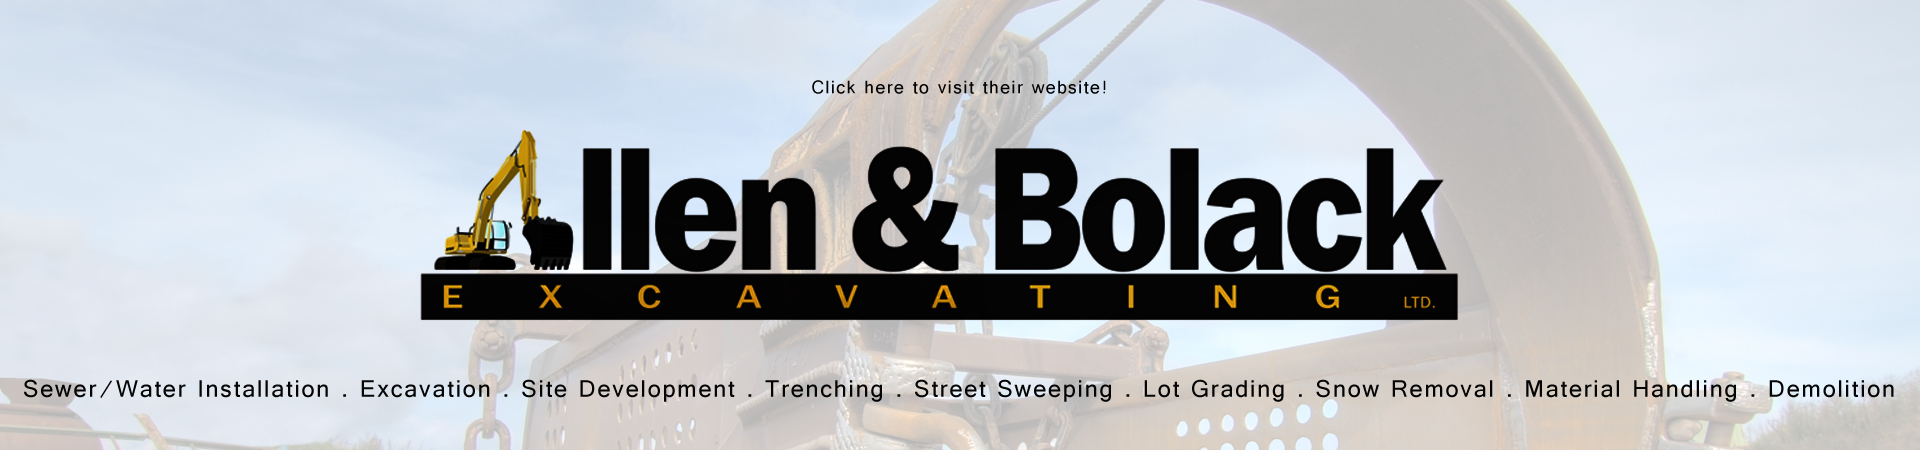 Allen & Bolack Excavating & Construction, Demolition, Development & More